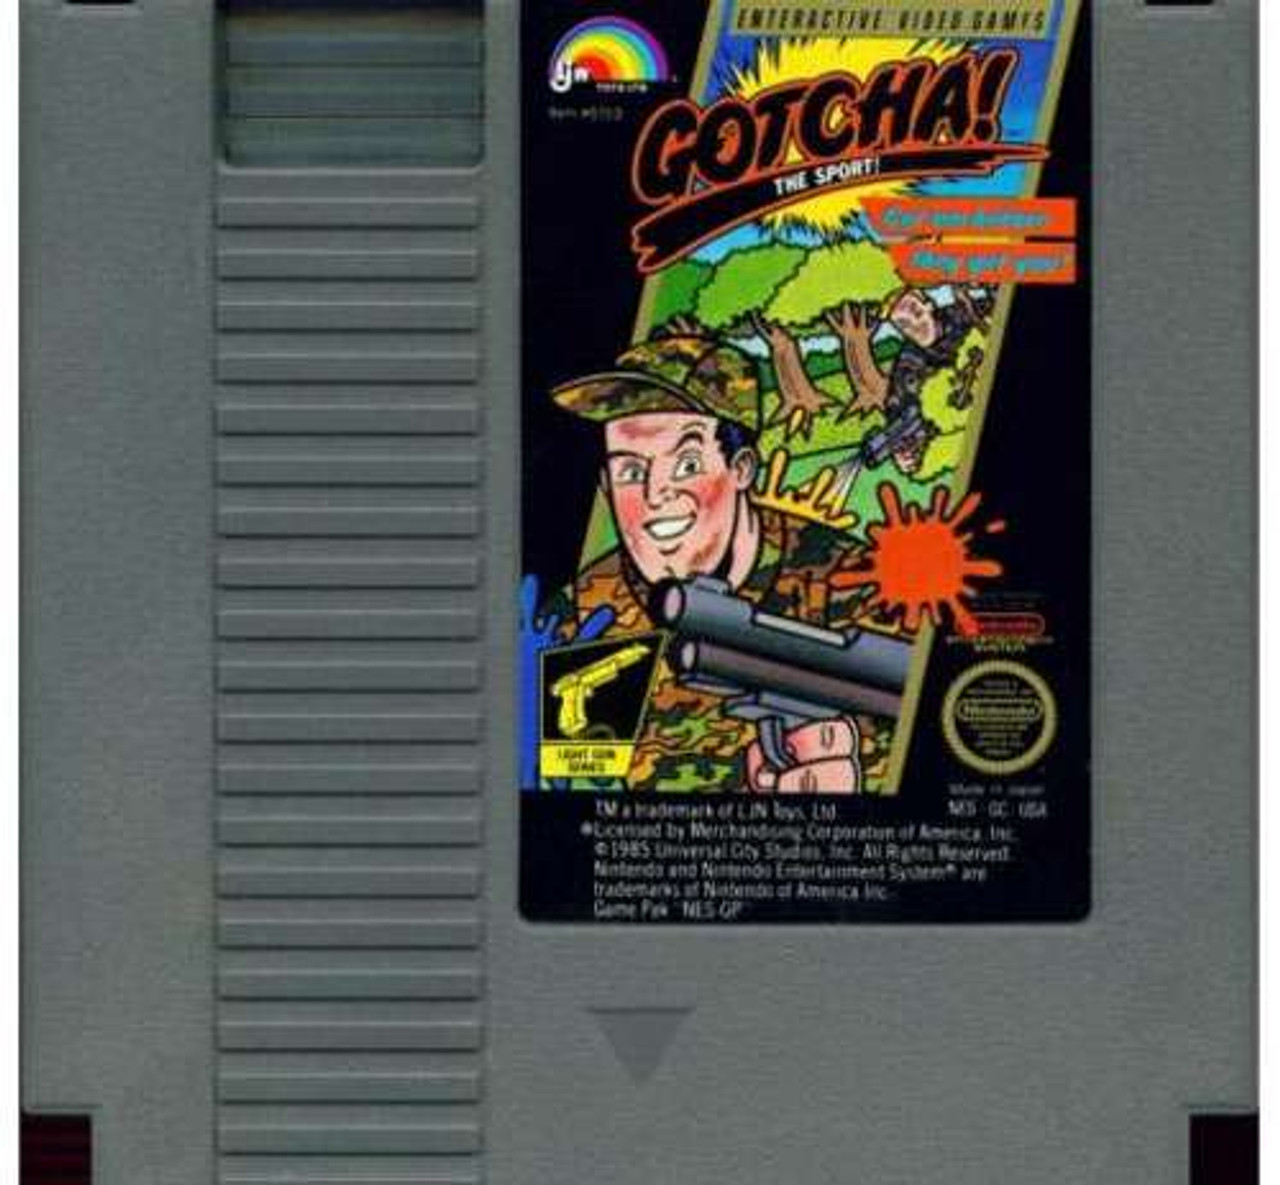 Nintendo NES Gotcha! The Sport! Video Game Cartridge [Played Condition]